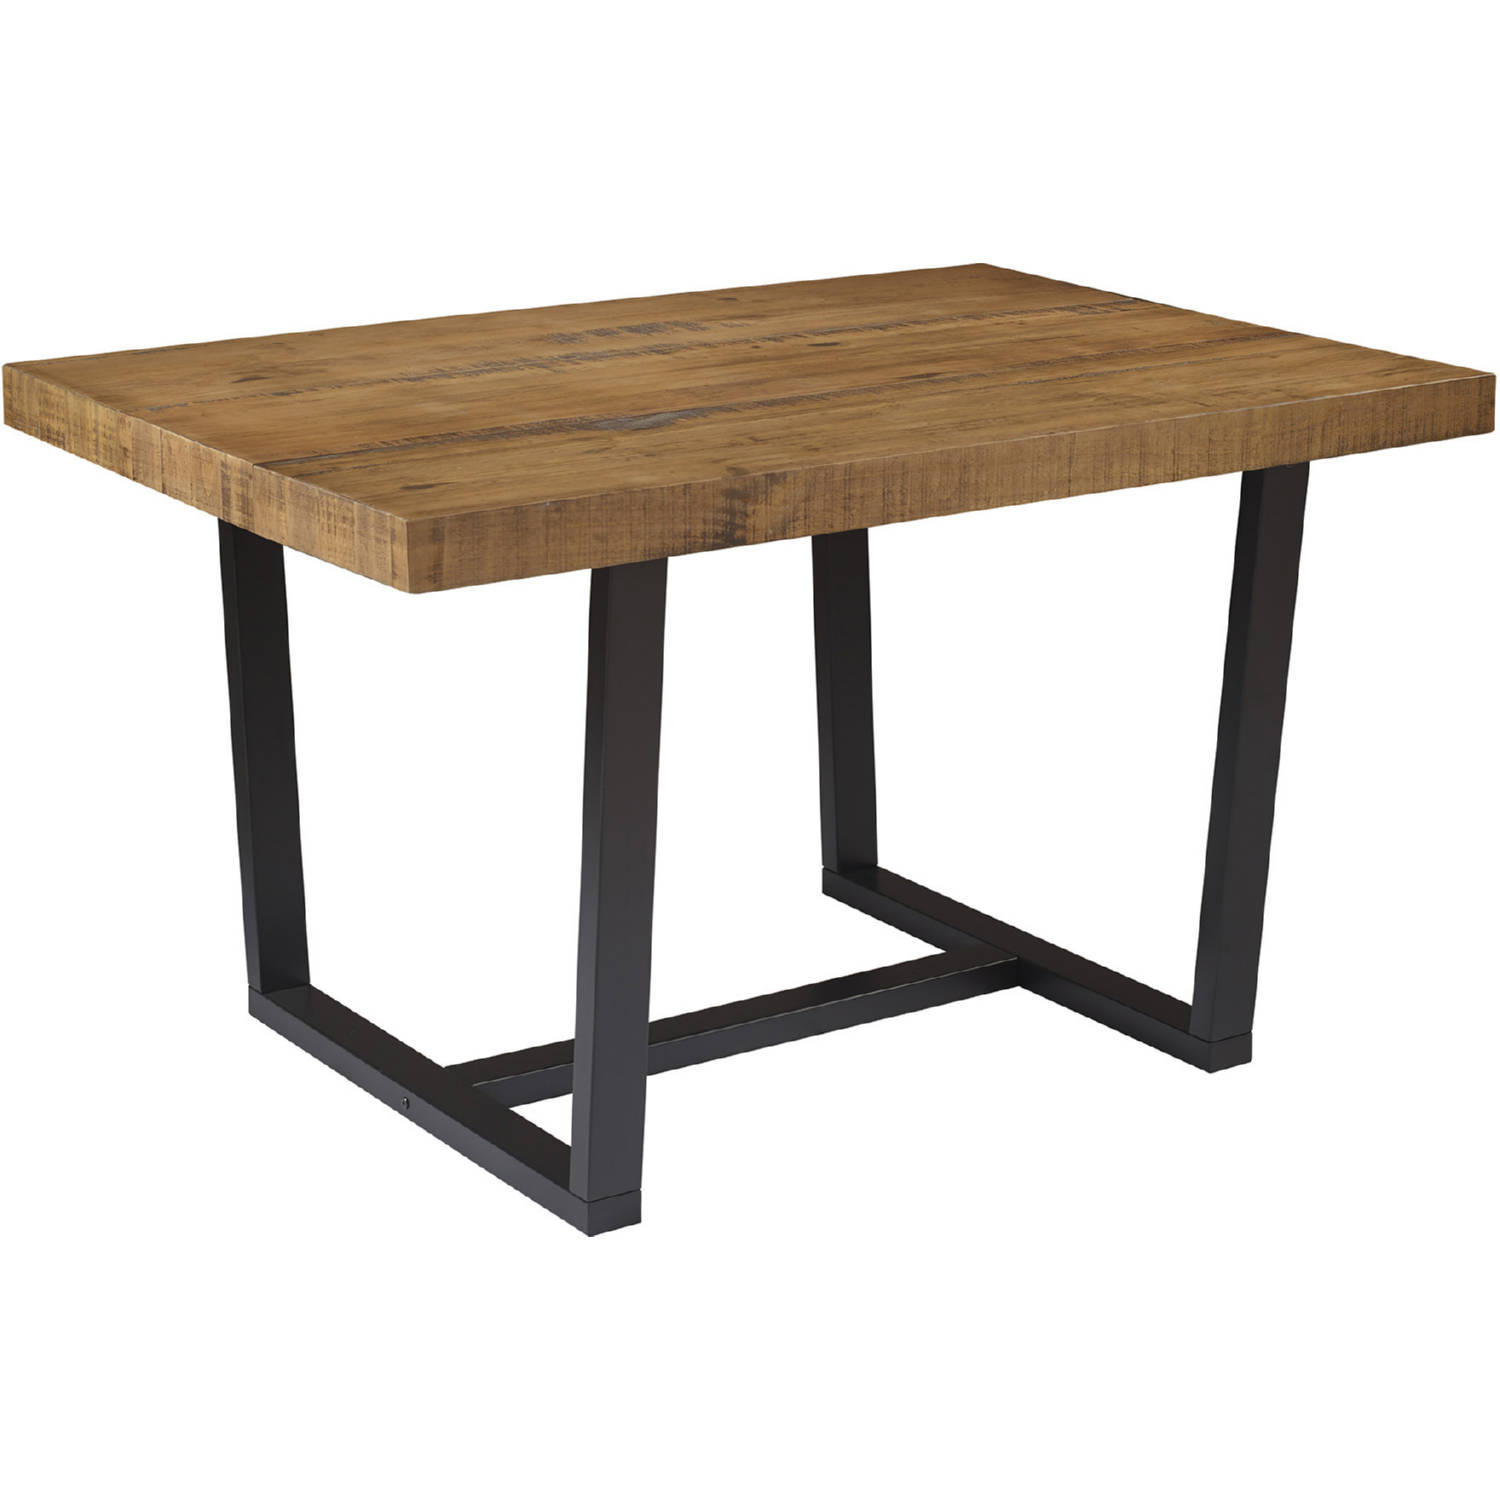 Splendid Reclaimed Barn Wood Table Furniture Pretty Rustic Within Most Current Griffin Reclaimed Wood Dining Tables (View 9 of 25)